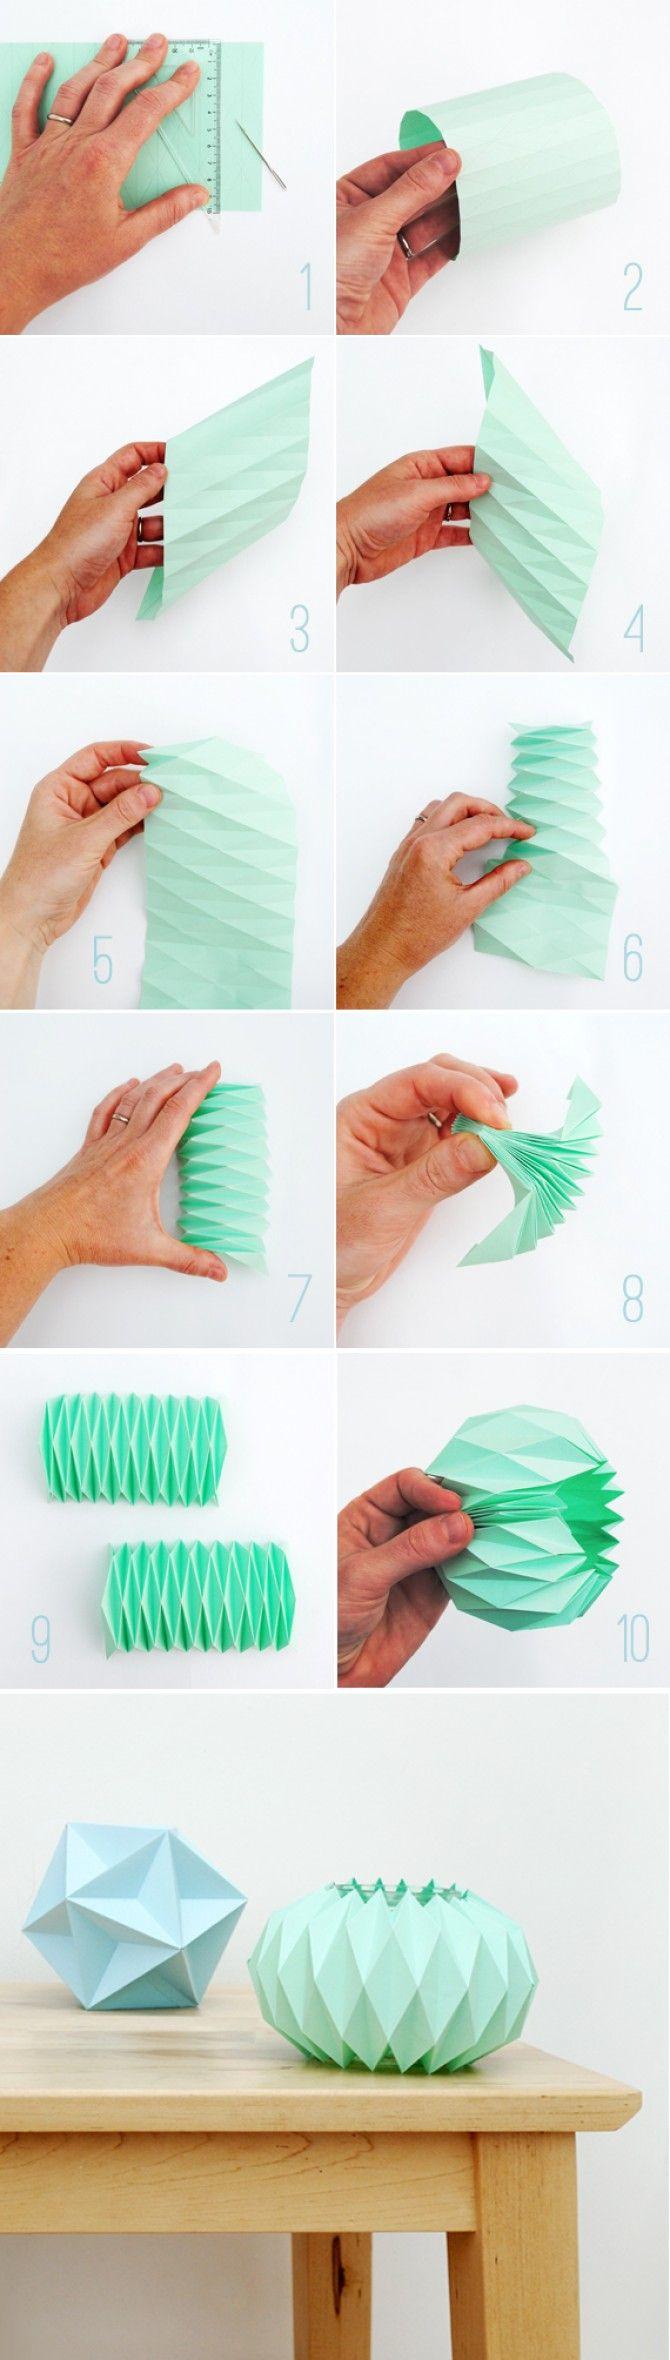 accordion-paper-how-to-e1380139091886.jpg (670×2360)